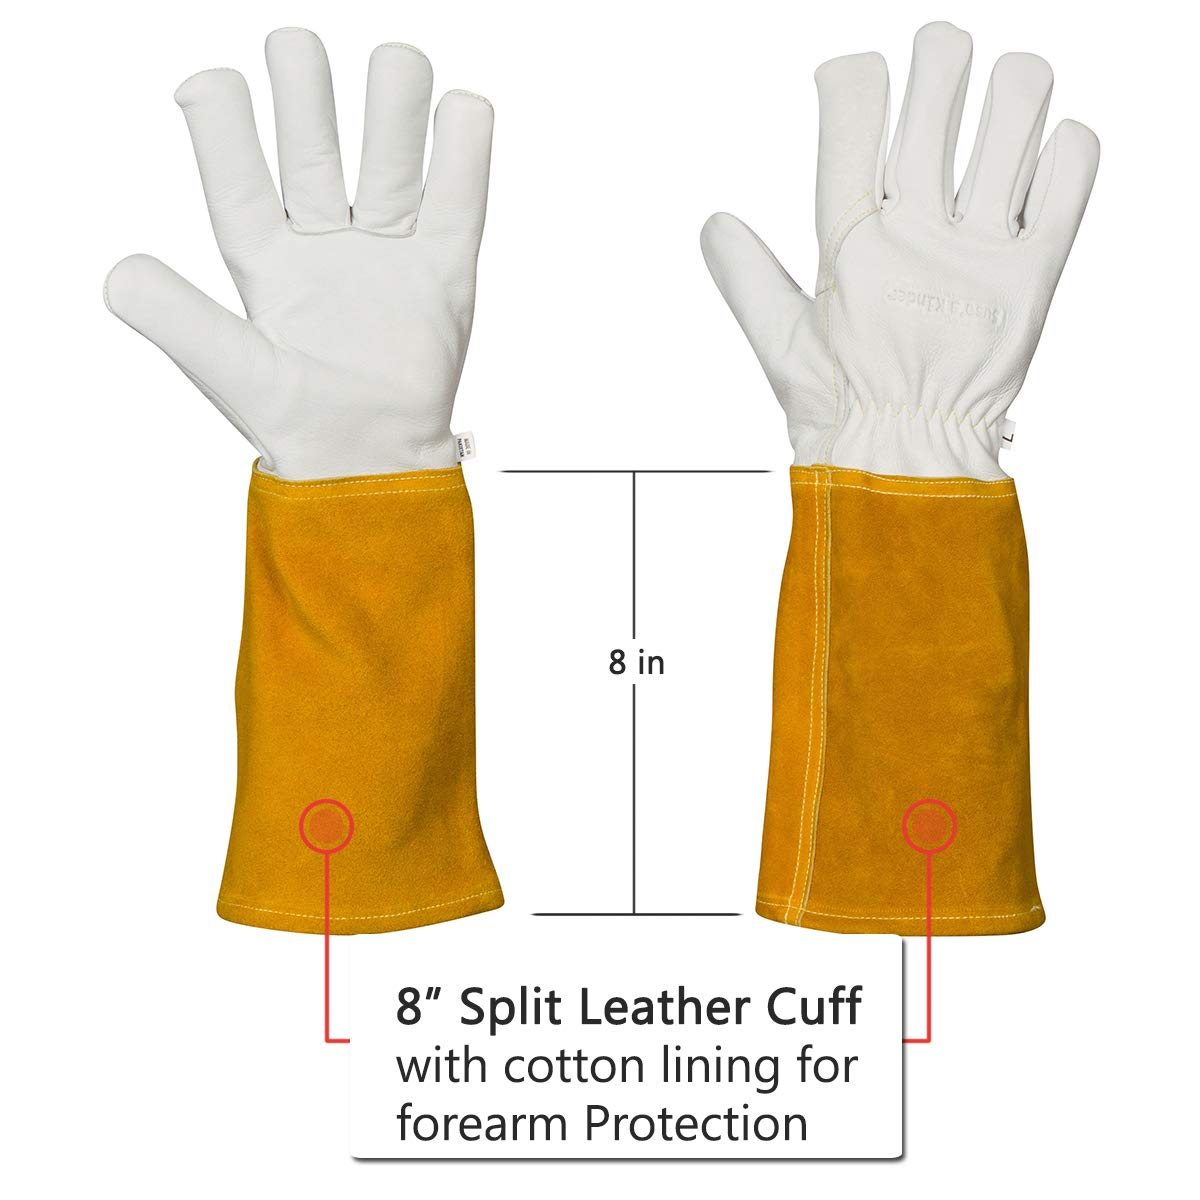 Welding Gloves for Women, Small Mens, Fireproof Heat Resistant, Top Grain Cowhide Kevlar Lined Hand Weld (Small) by Suse's Kinder (Image #5)